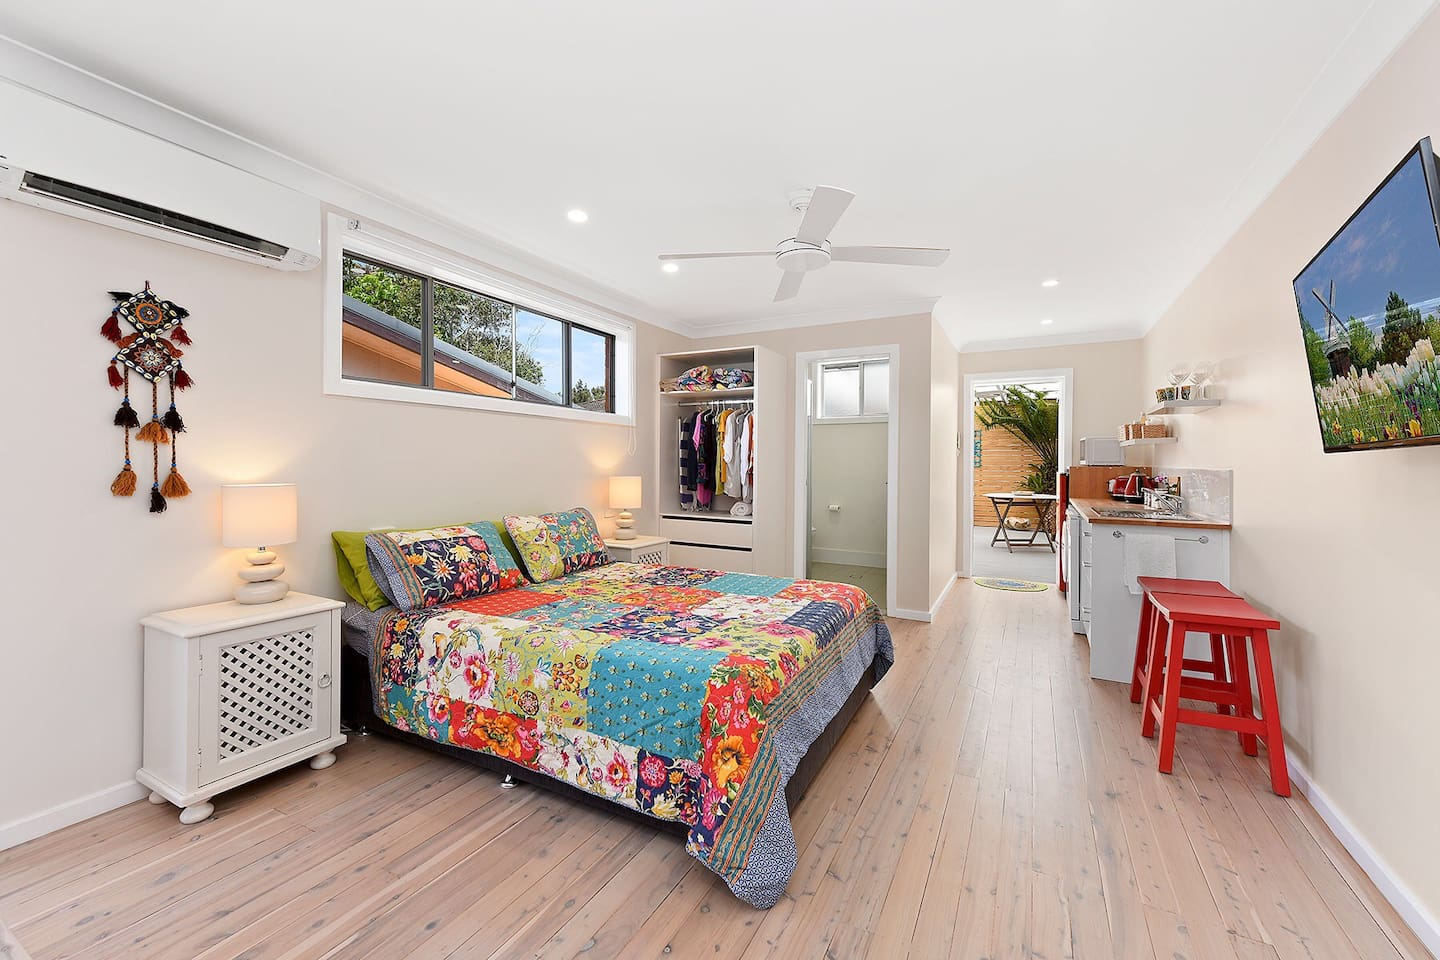 This lovely studio room has just been renovated so everything is new. It is bright and airy with a fan plus air conditioner if you feel that you need it.